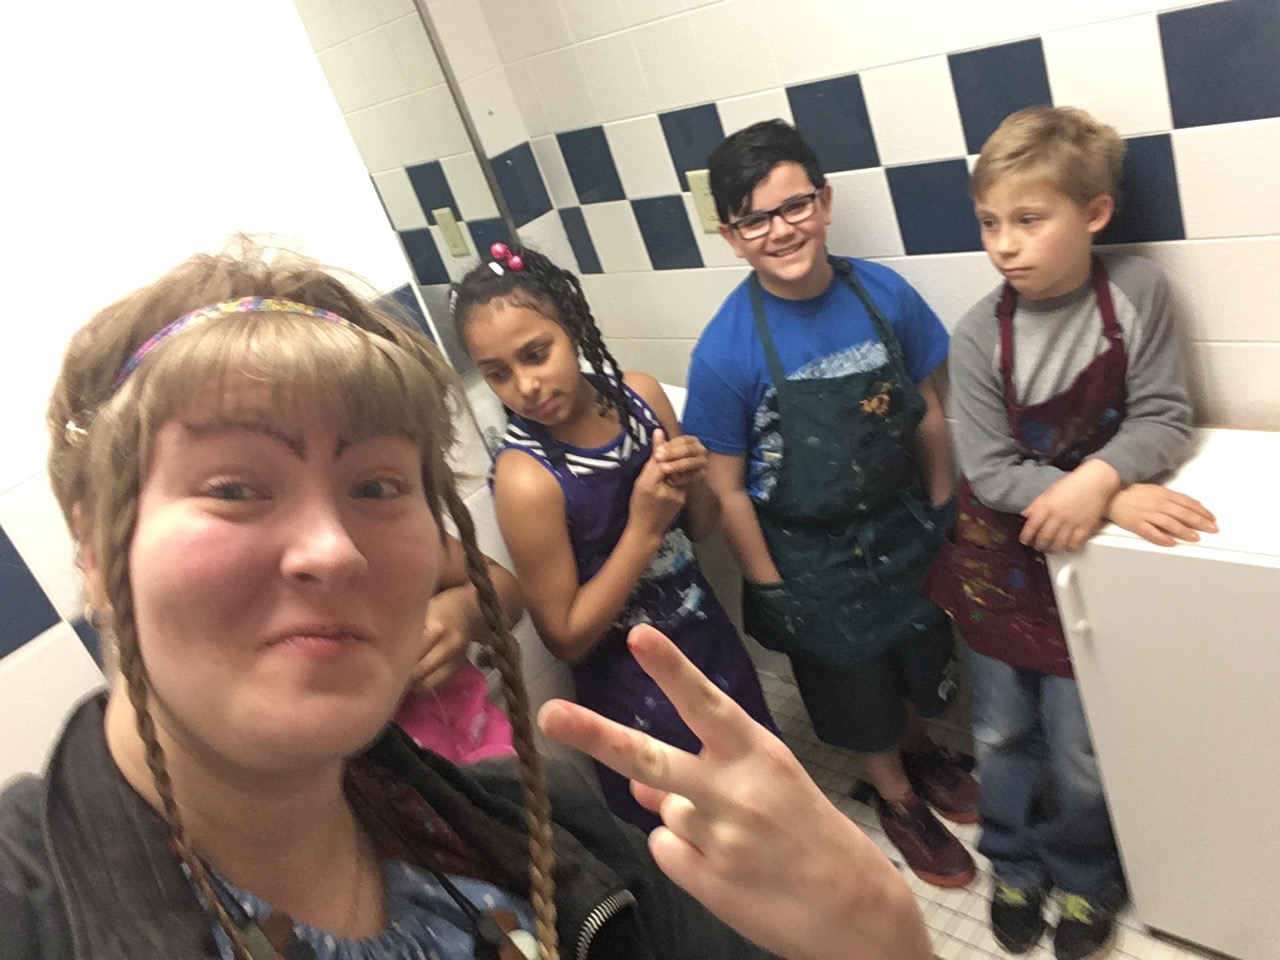 Hiding in the bathroom together was a strange experience :D